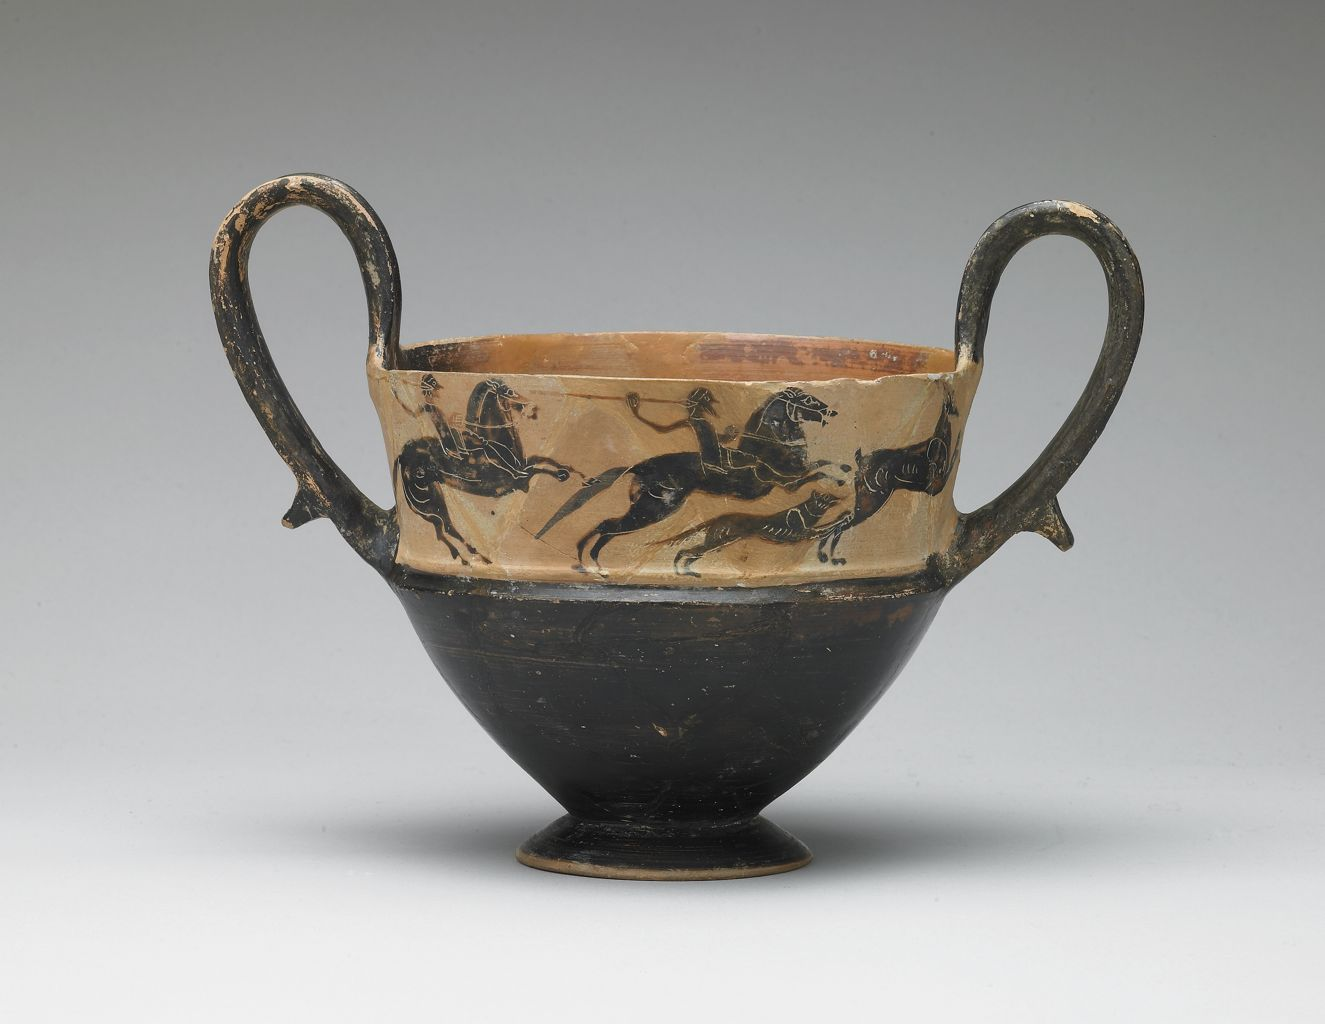 Kantharos with the depiction of two horsemen with spears and dog hunting stag, mid-6th century BC, Boeotian